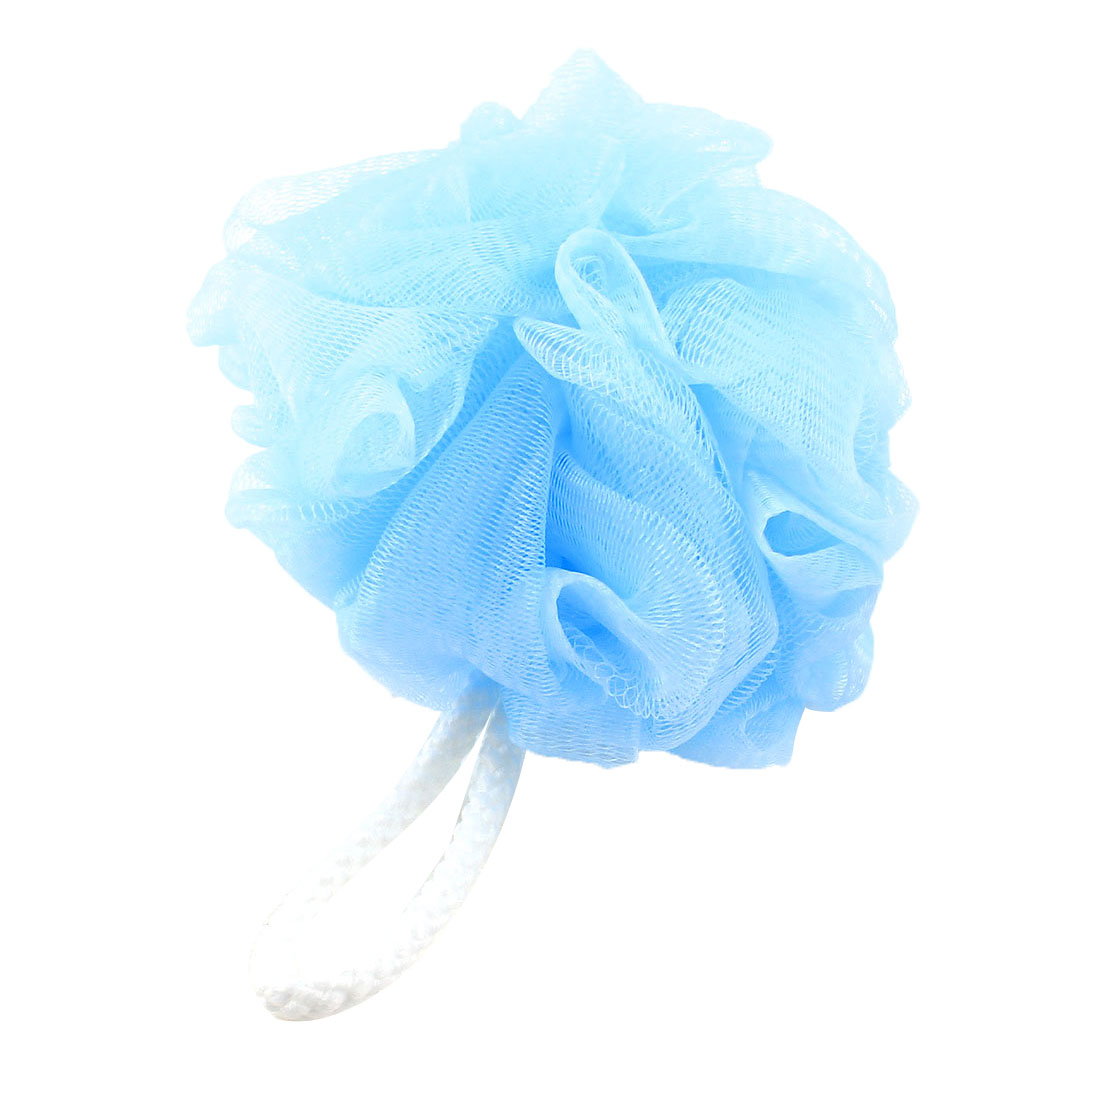 2 Pcs Sky Blue Body Washing Scrubber Ball Shaped Bath Shower Pouf